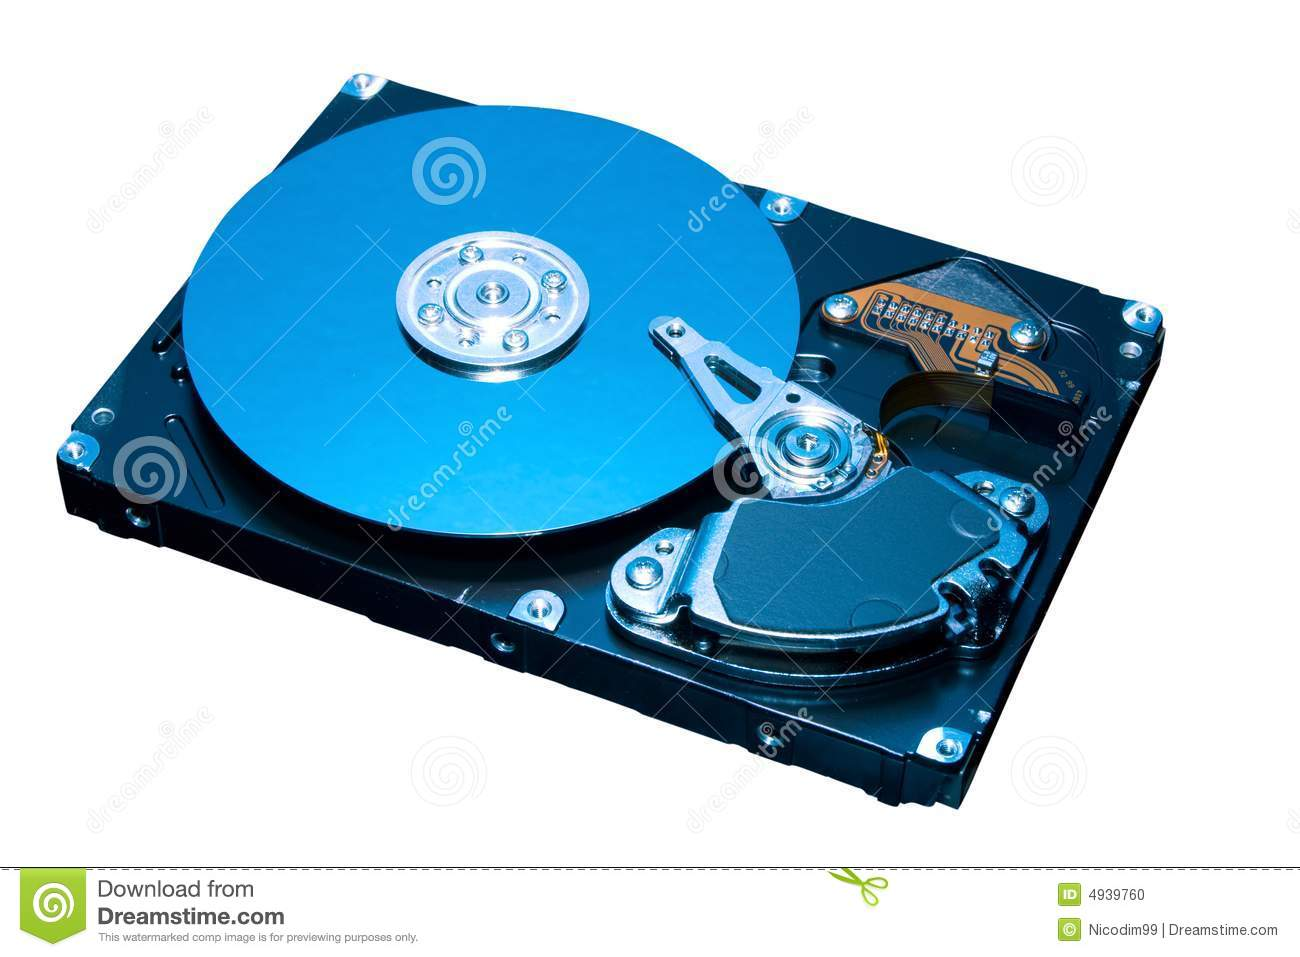 White Room Hard Drive Recovery